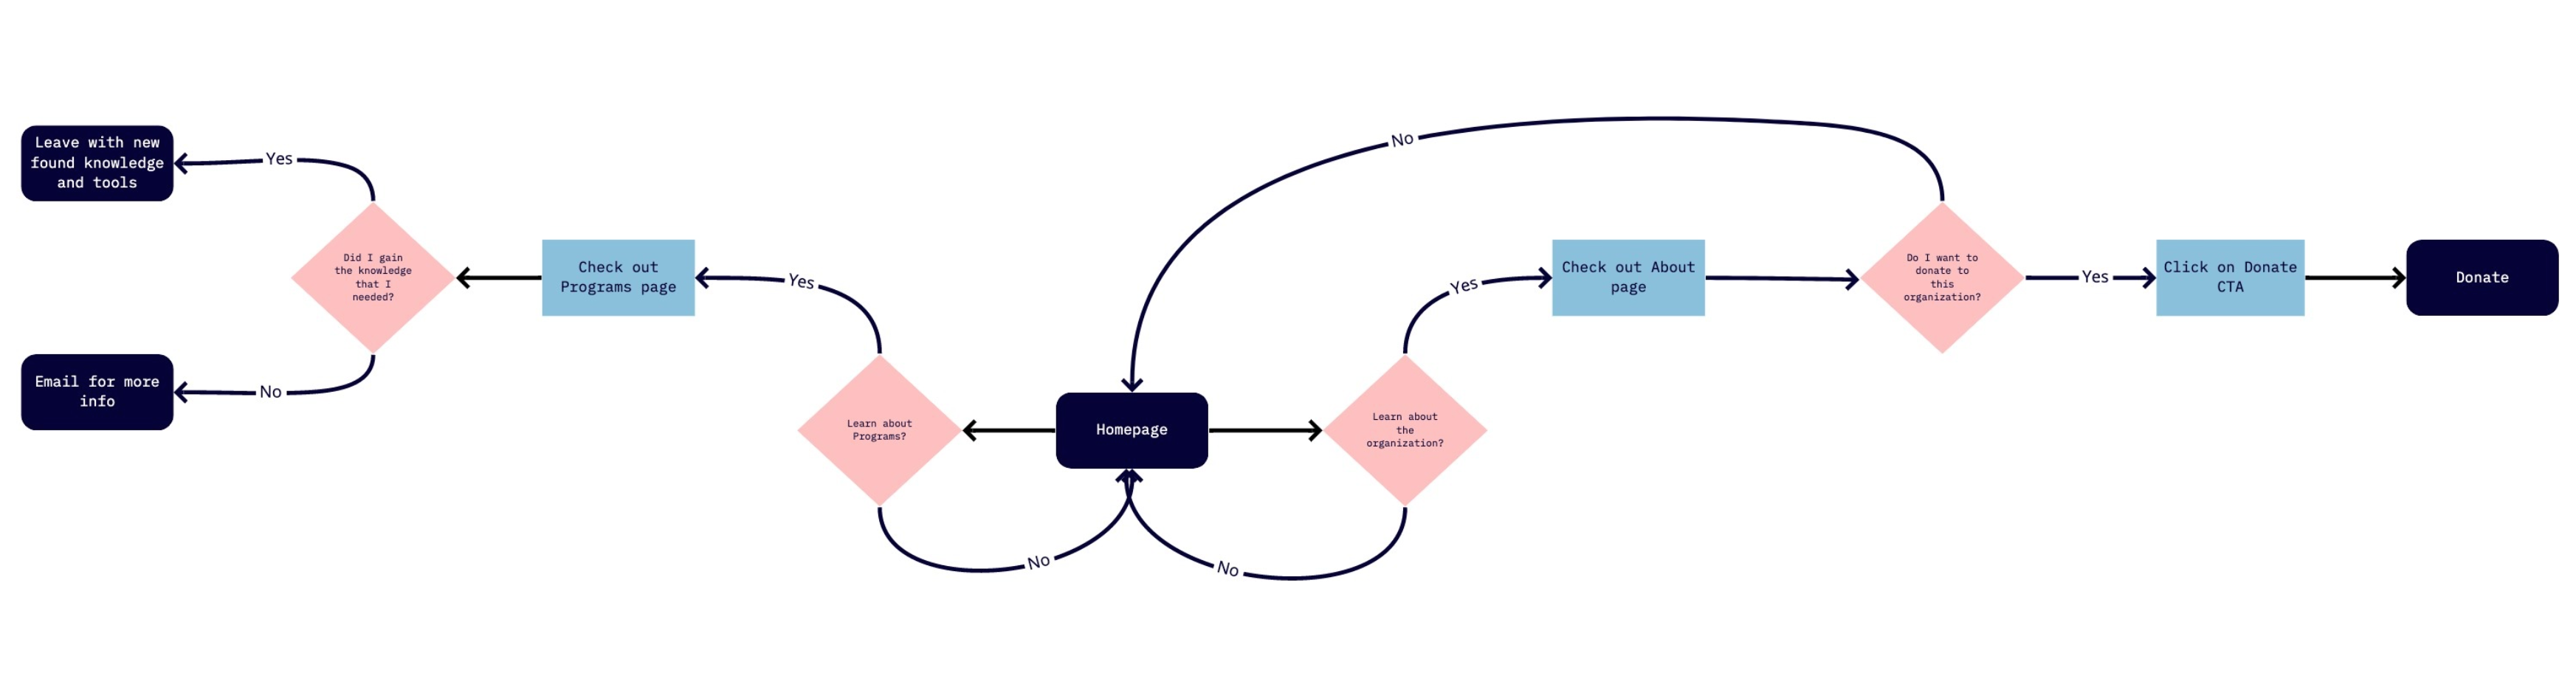 THIS USER FLOW SHOWS HOW THE USER CAN LOOK FOR MORE INFORMATION TO READ ABOUT THE ORGANIZATION BEFORE MAKING THE DECISION TO DONATE